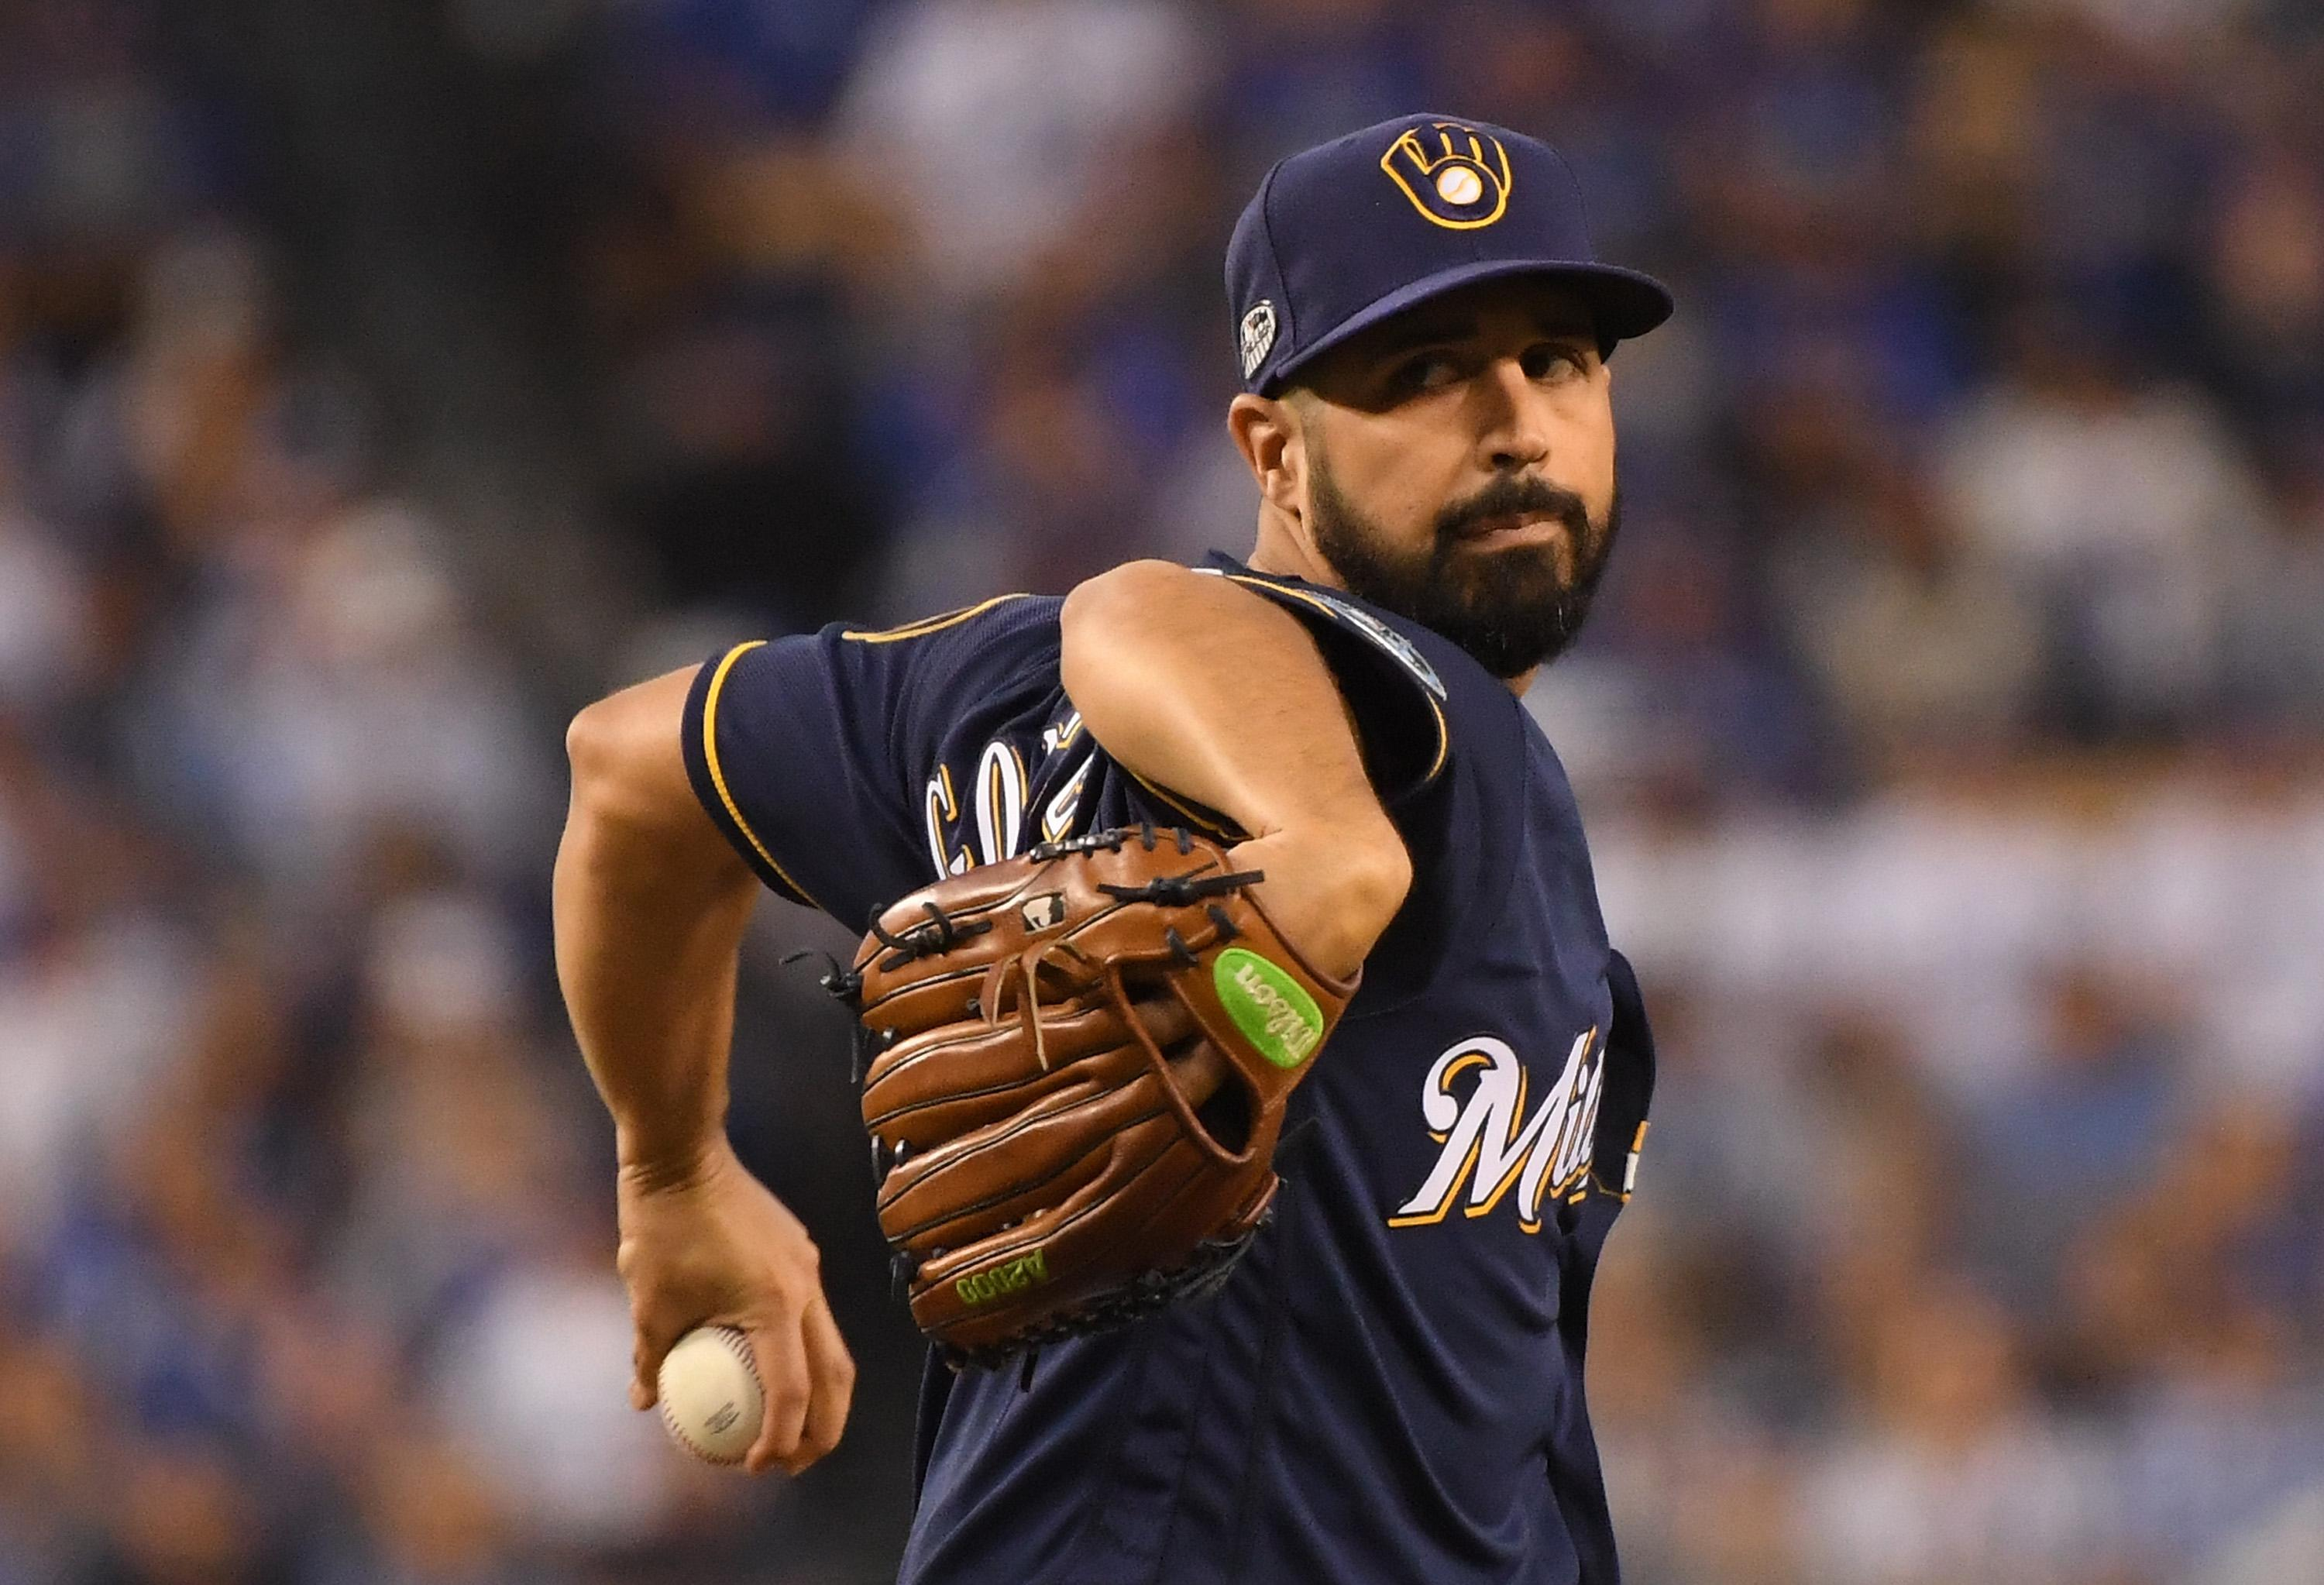 Yankees reportedly sign Gio Gonzalez to a minor league contract